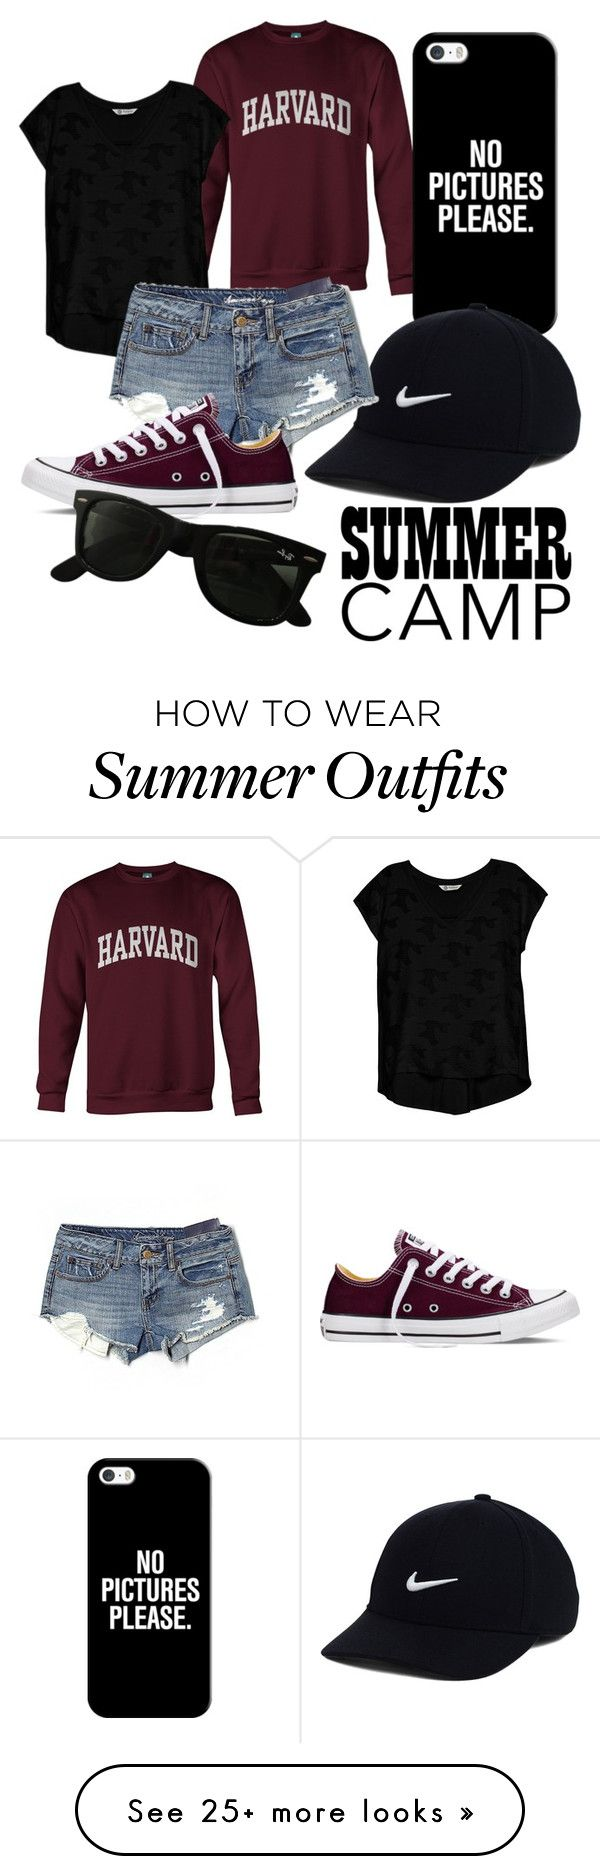 """""""Untitled #19"""" by mirandabowman1 on Polyvore featuring Bobeau, Casetify, NIKE, American Eagle Outfitters, Converse, Ray-Ban, summercamp and 60secondstyle"""